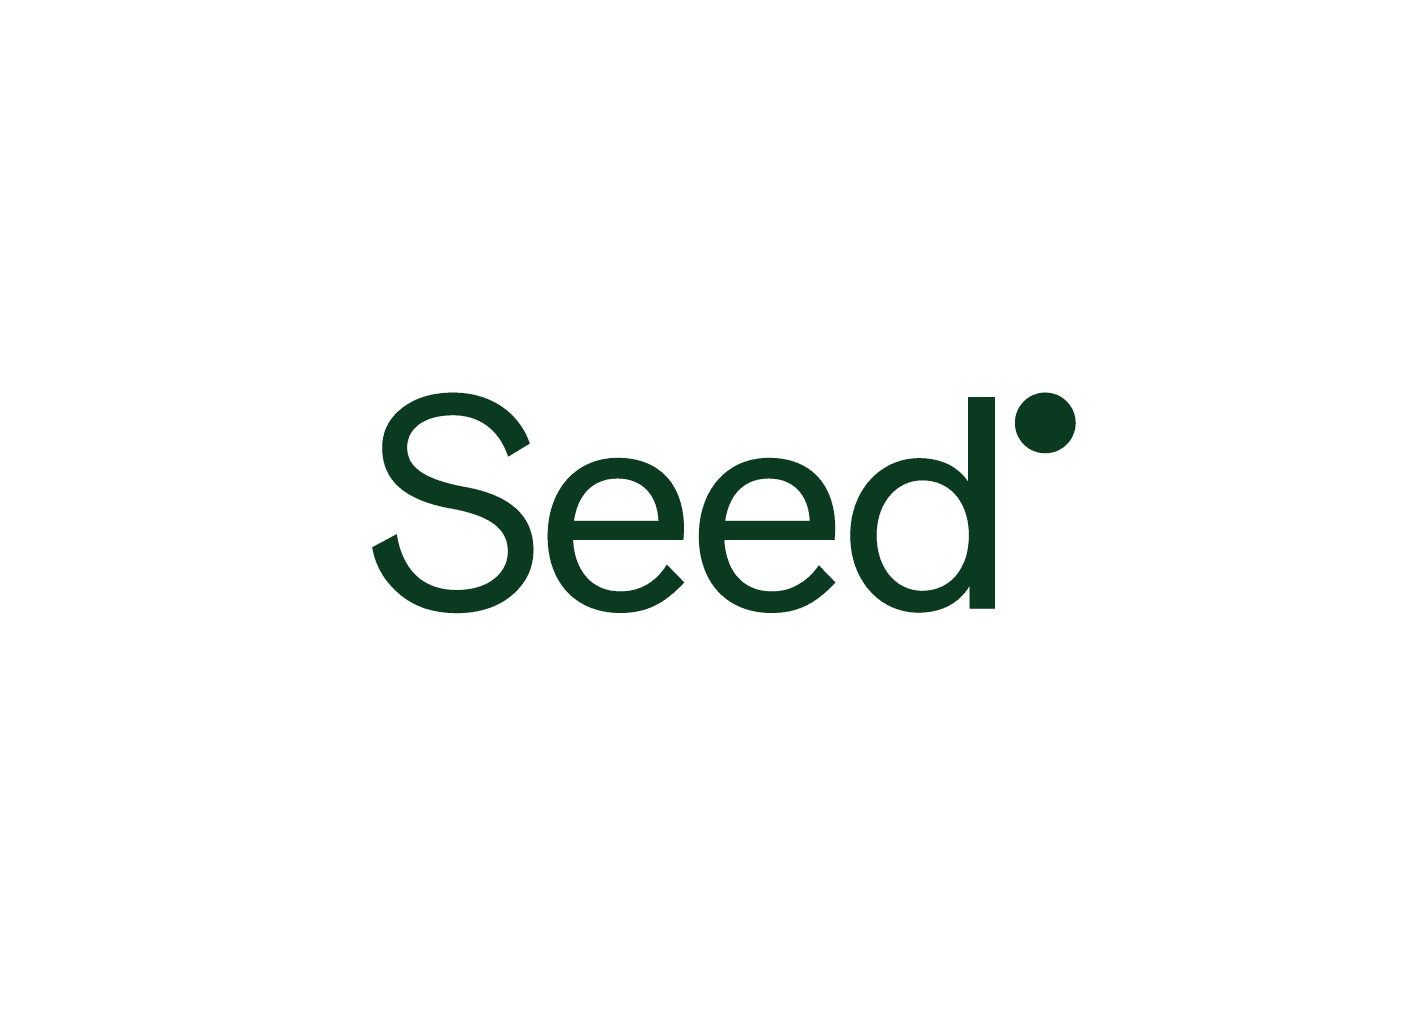 Seed Brand Identity System and Packaging